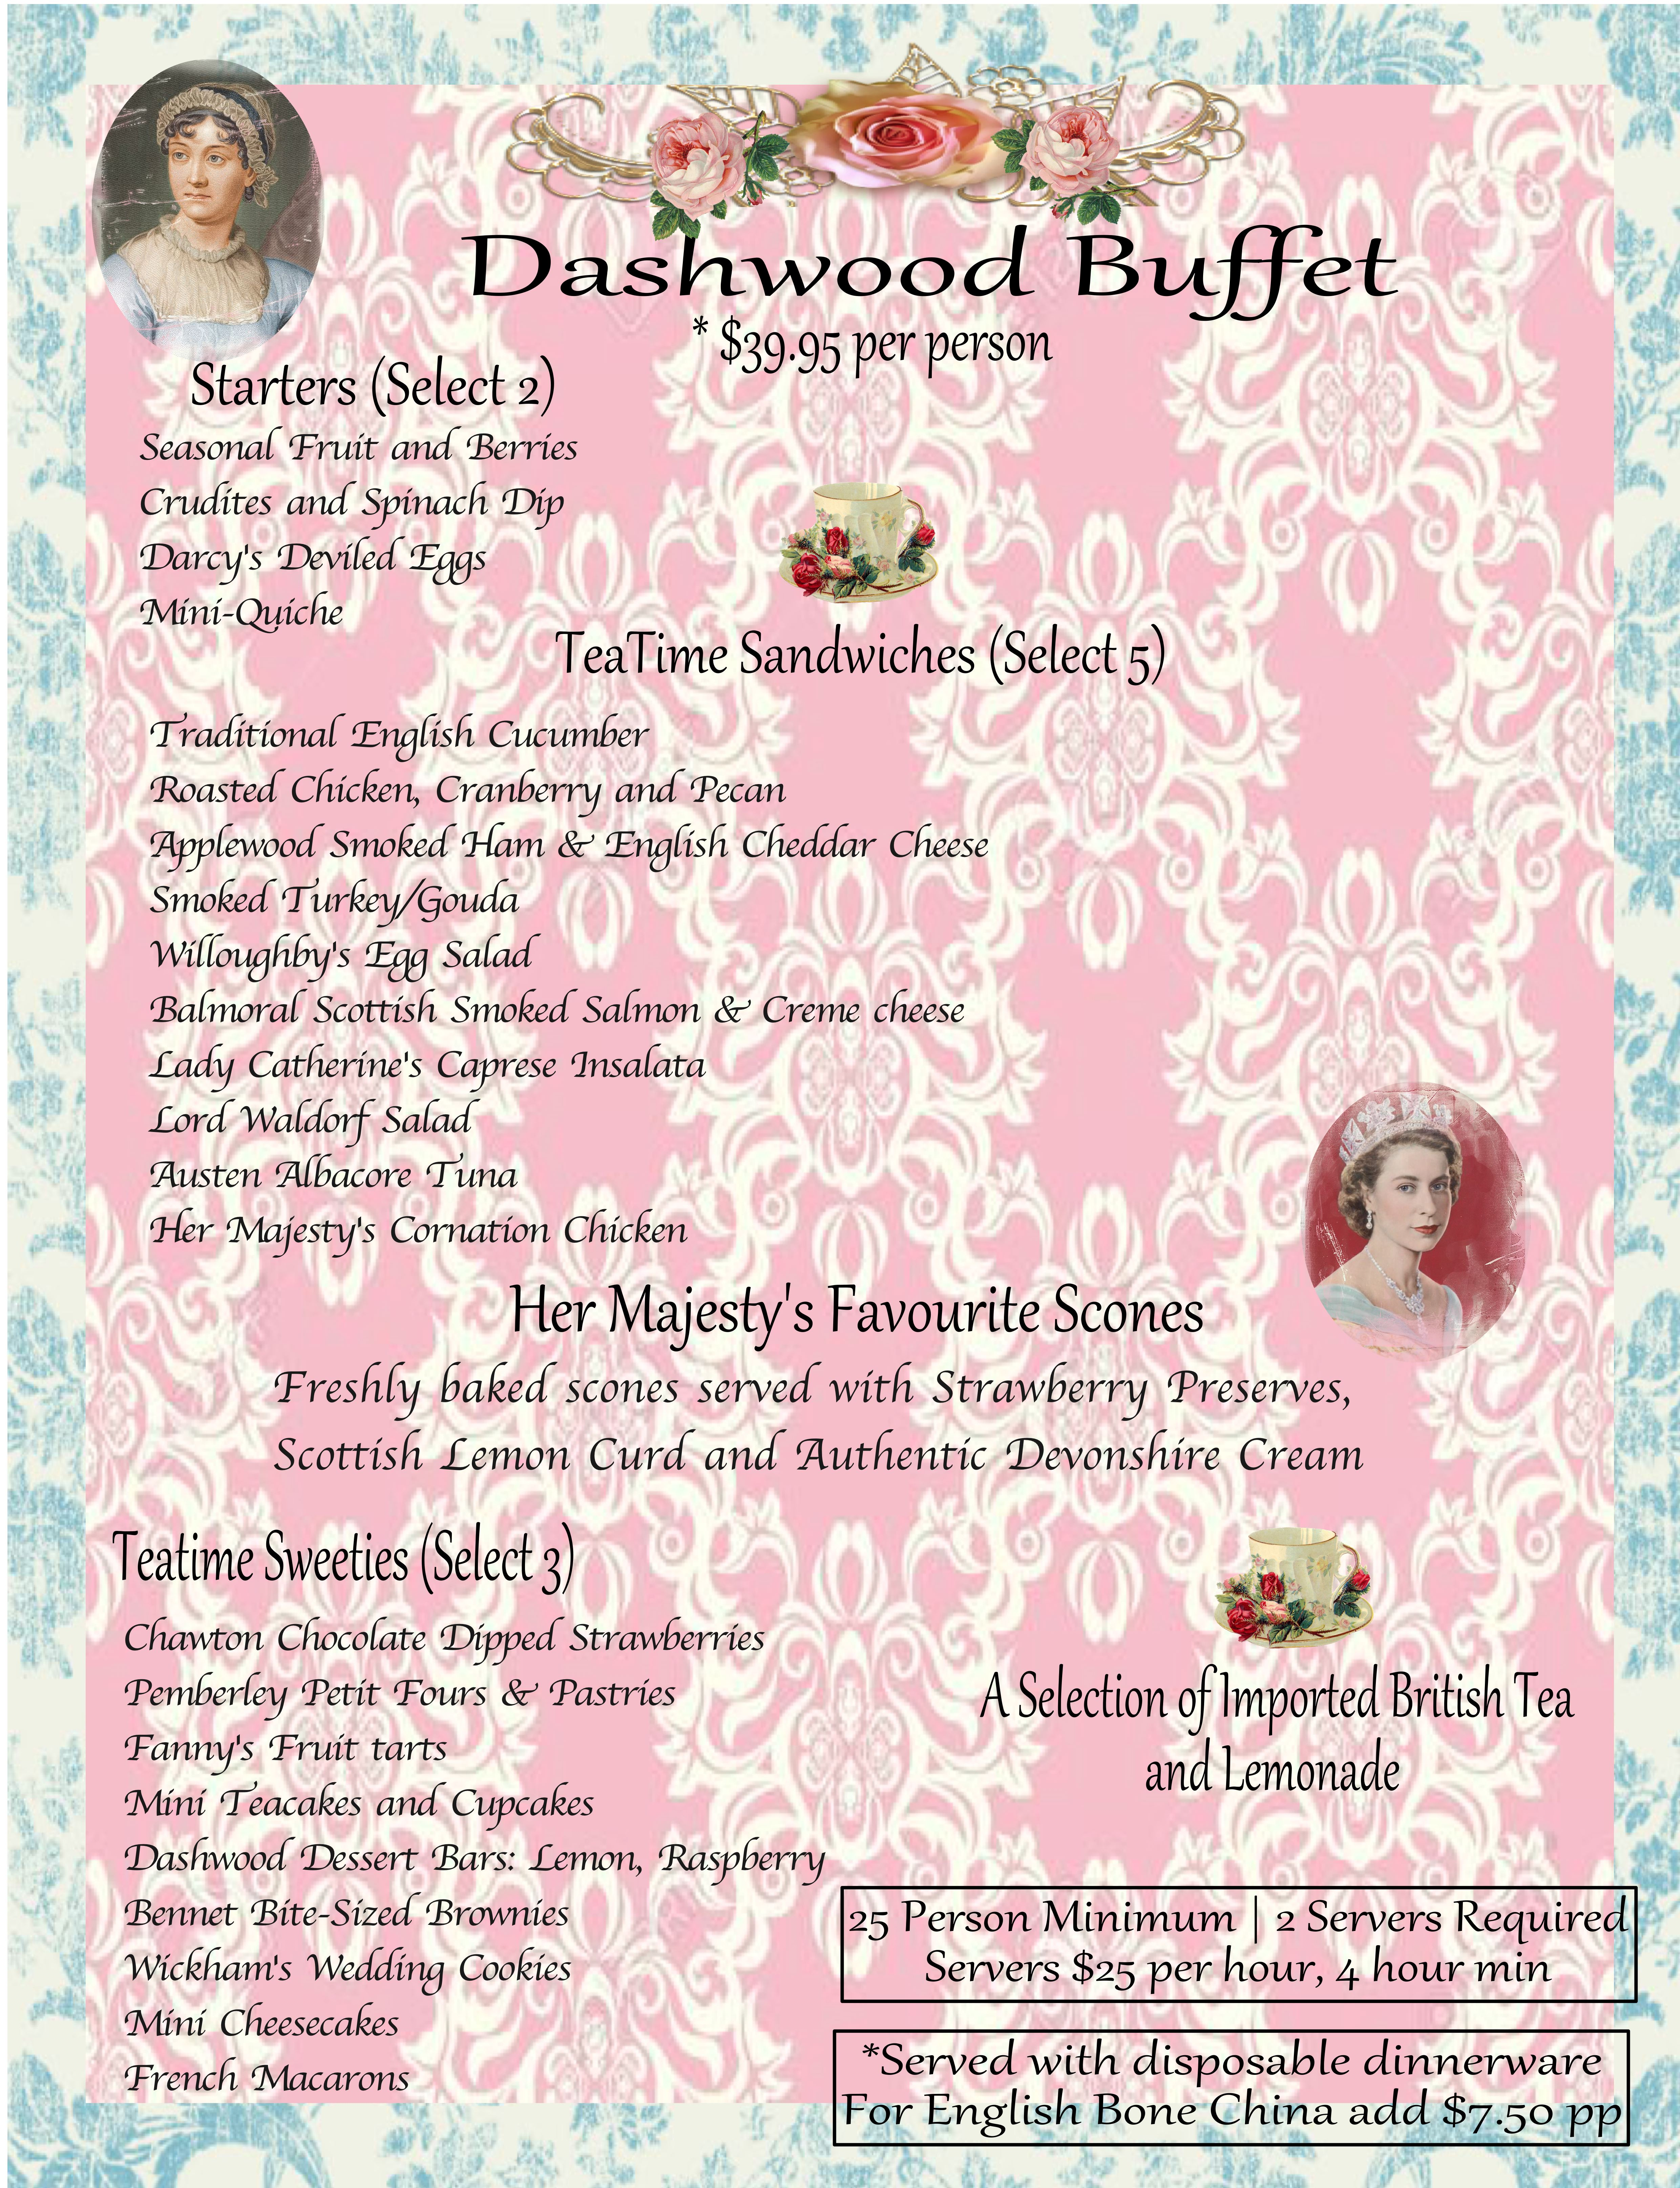 DashwoodBuffet